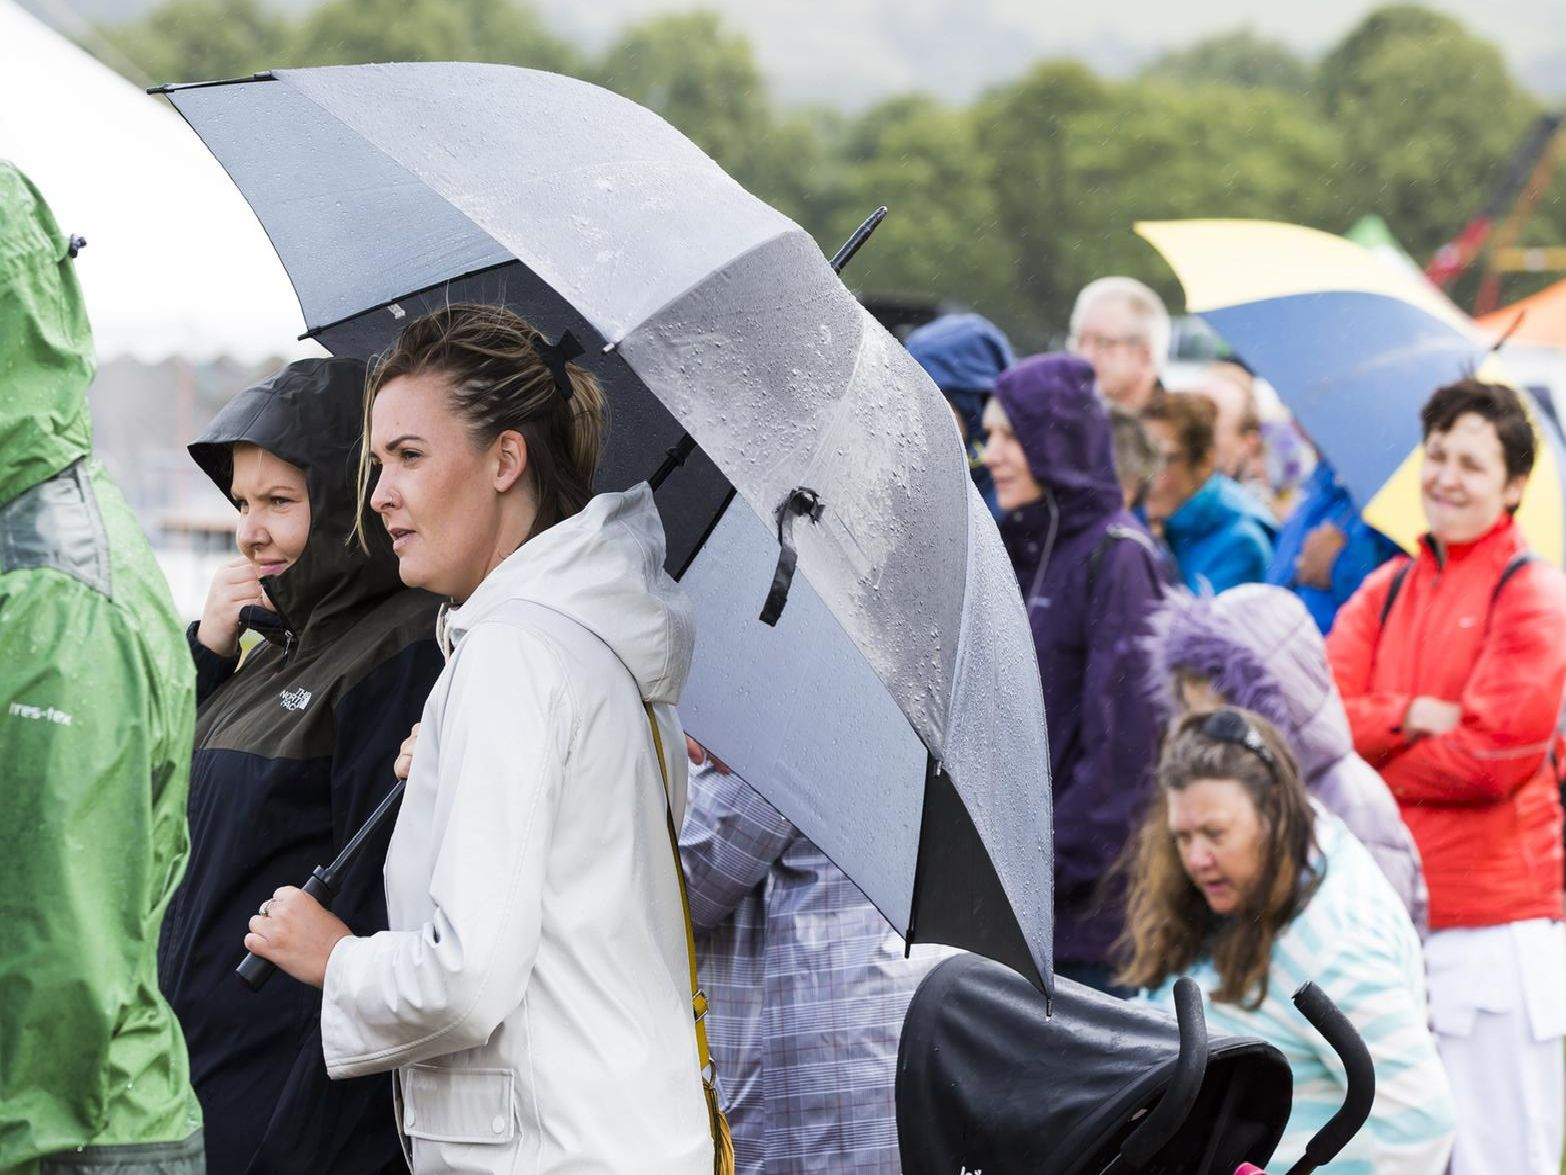 The brollies were out for this year's Halifax Show.